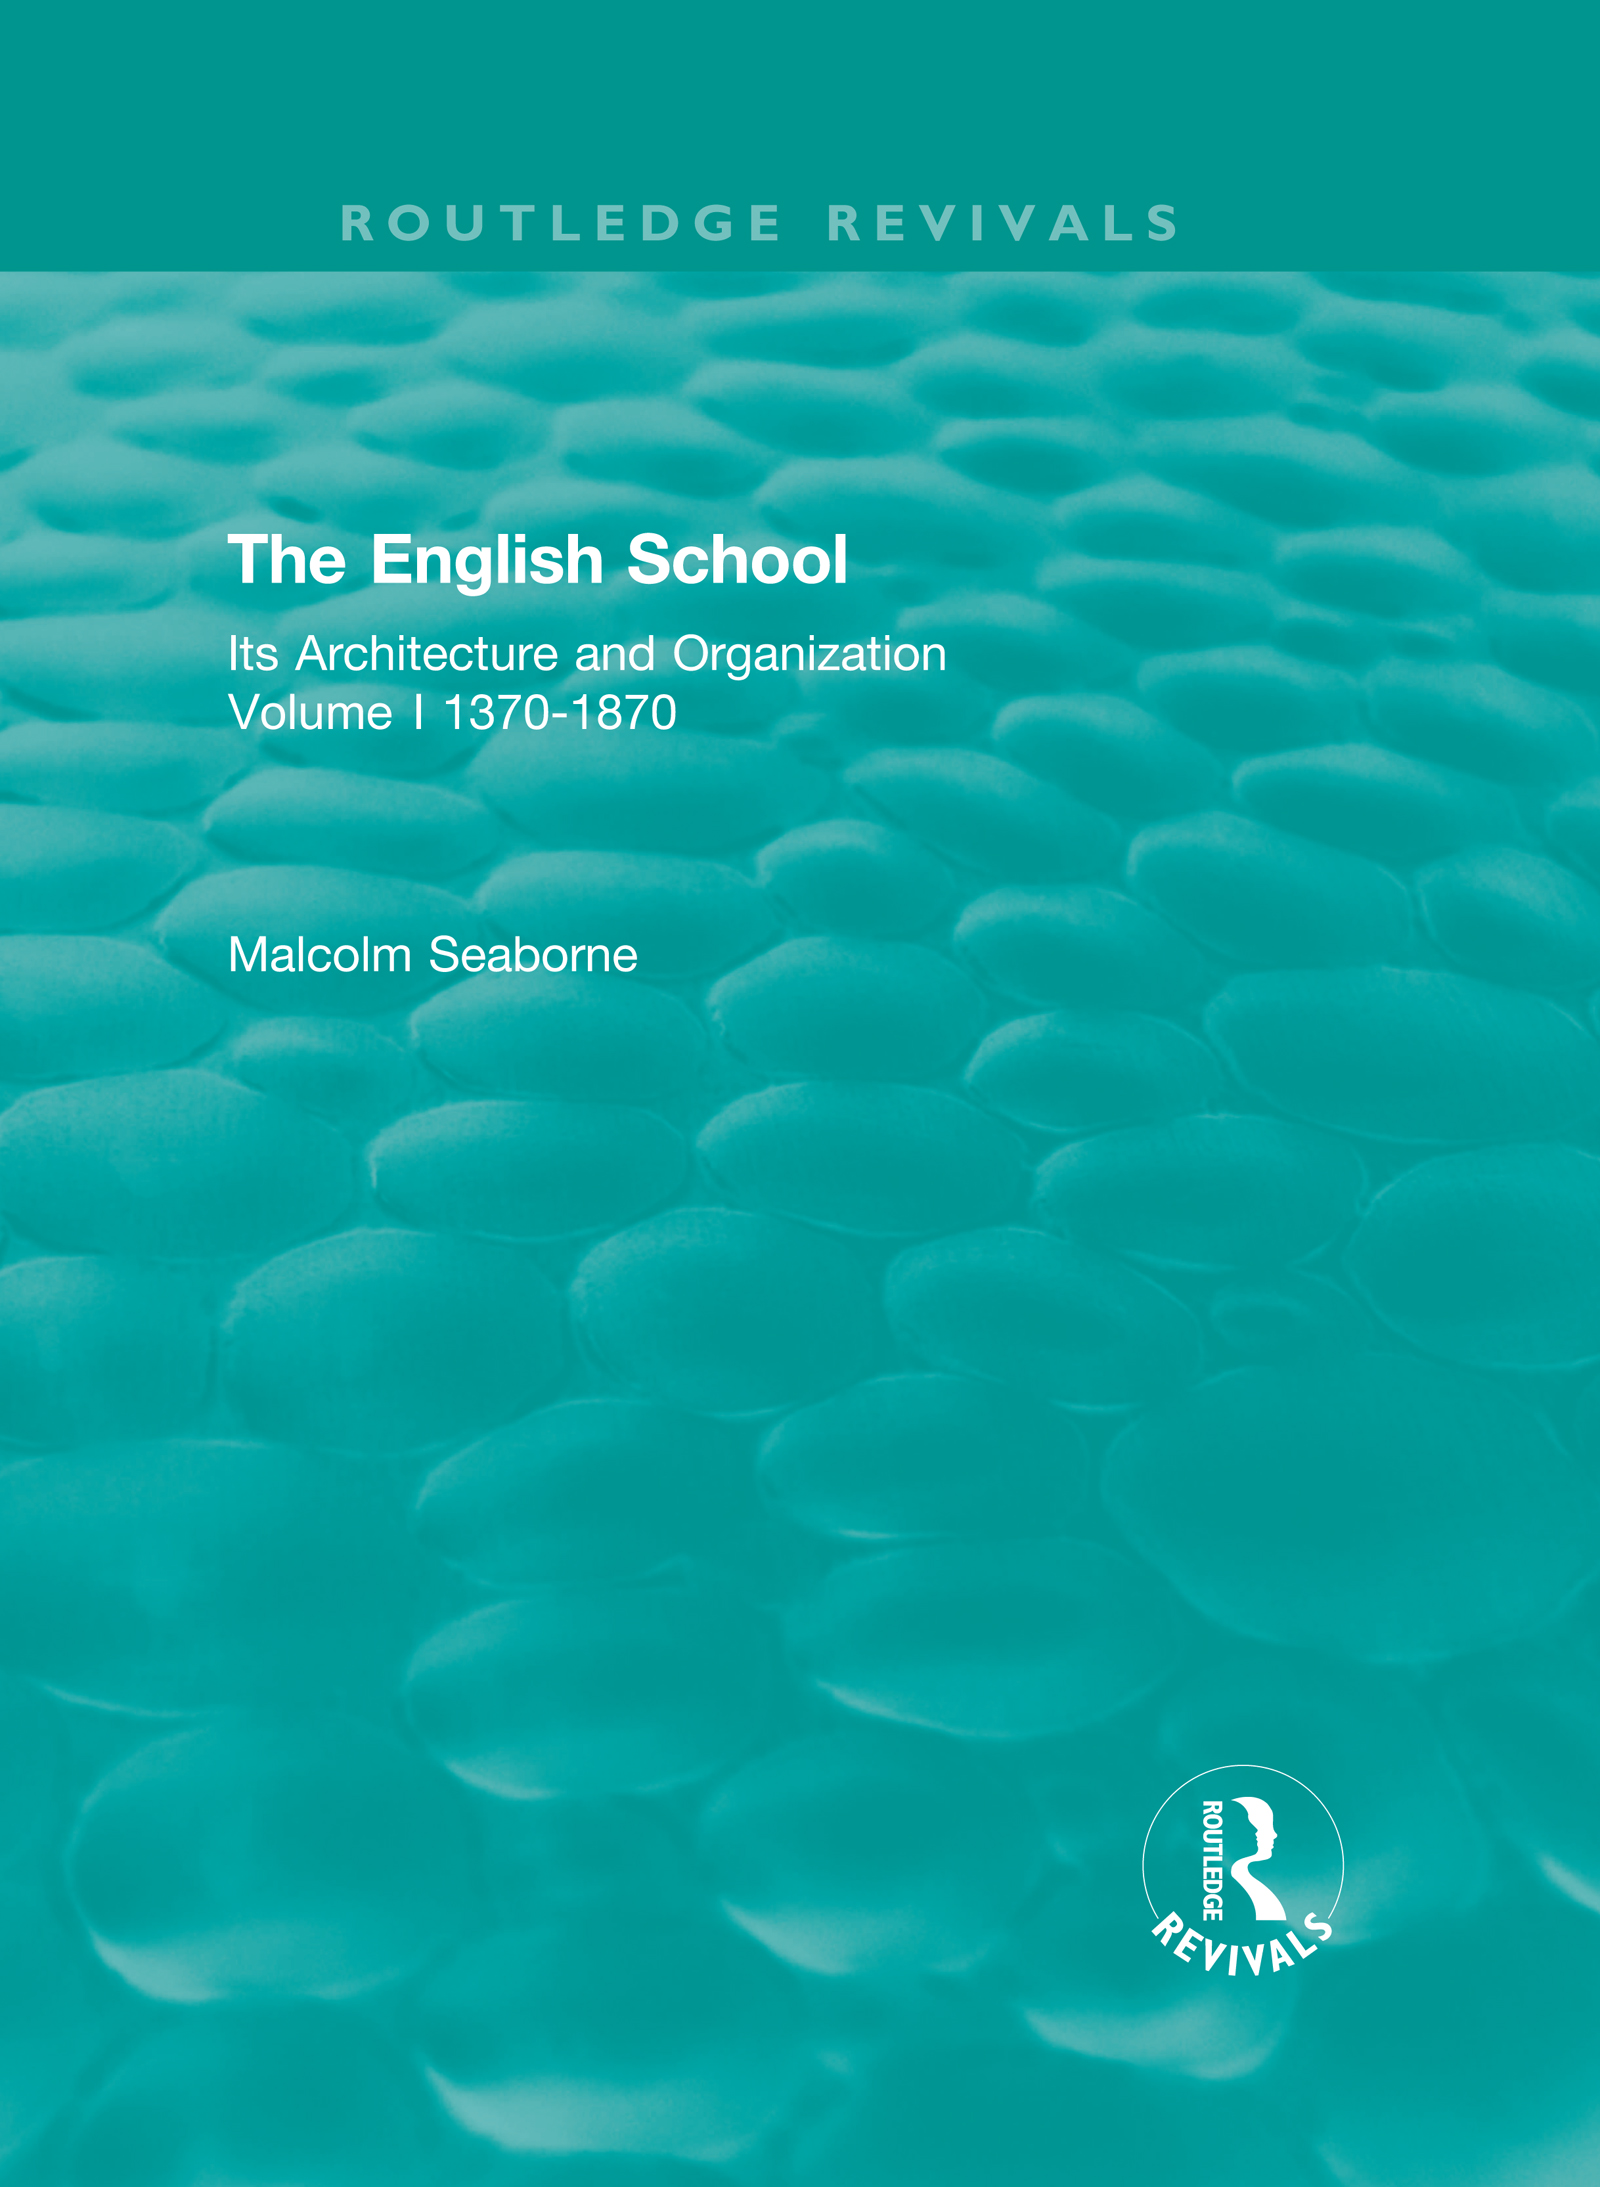 The English School: Its Architecture and Organization 1370-1870 book cover